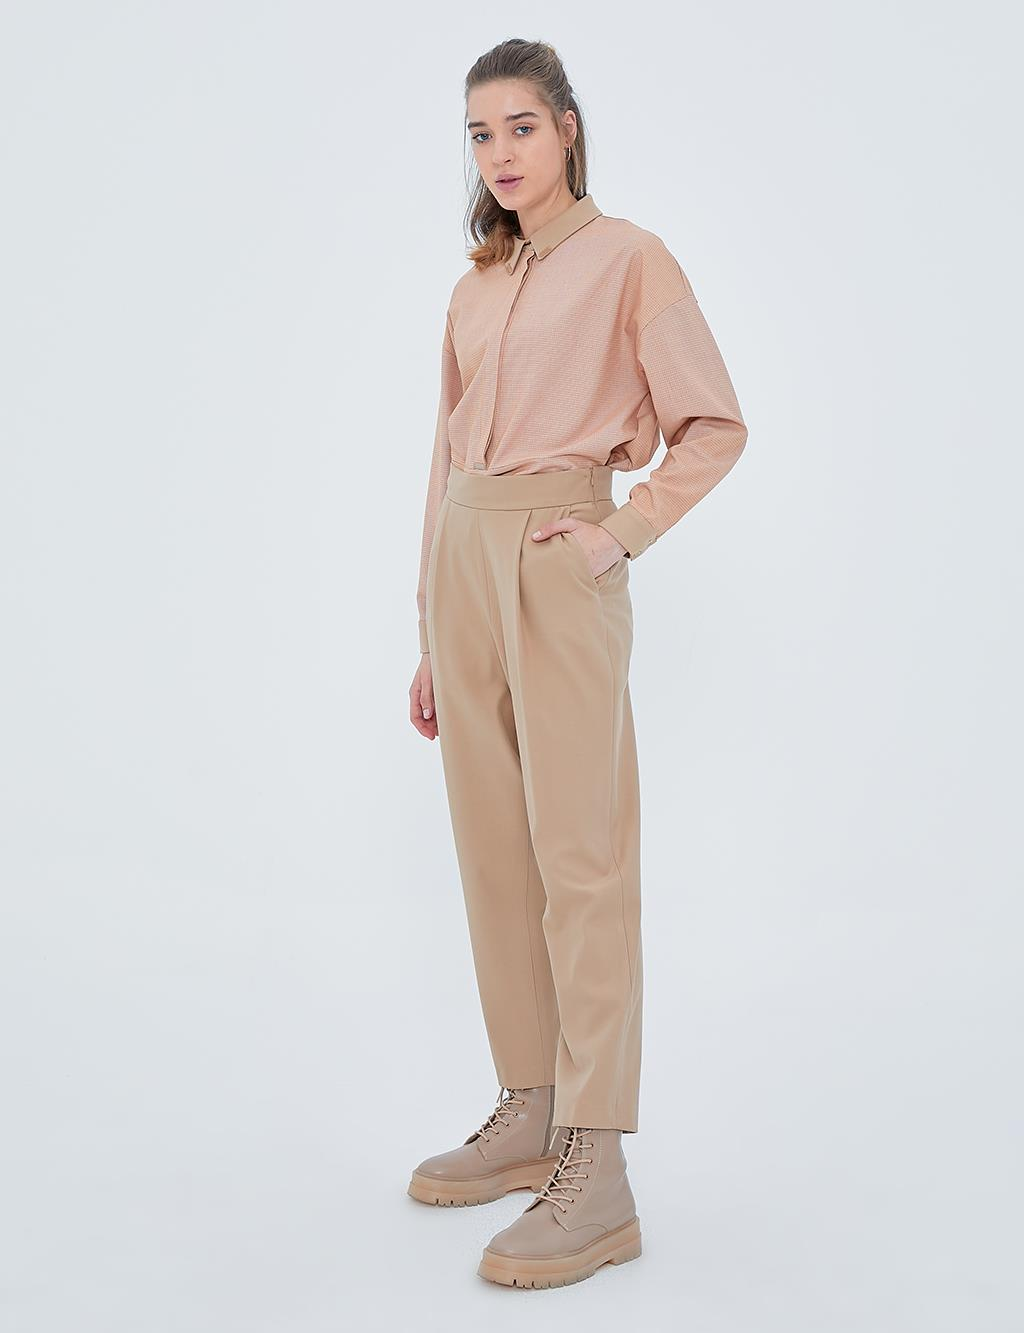 KYR Casual Fit Pleated Pants A20 79561 Beige